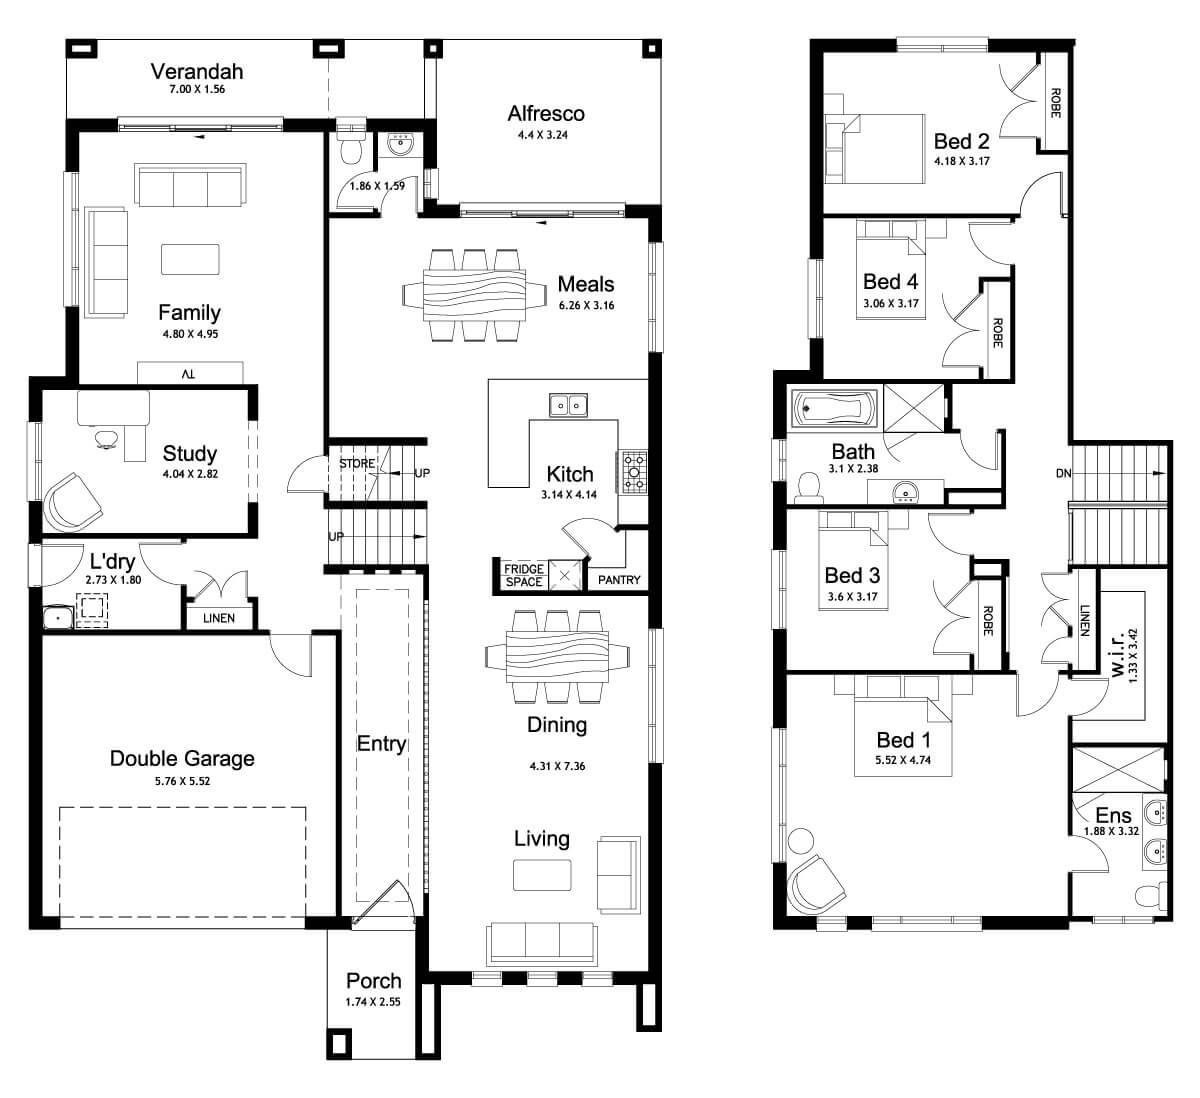 Floor Plan Friday Split Level 4 Bedroom Study: split level house plans